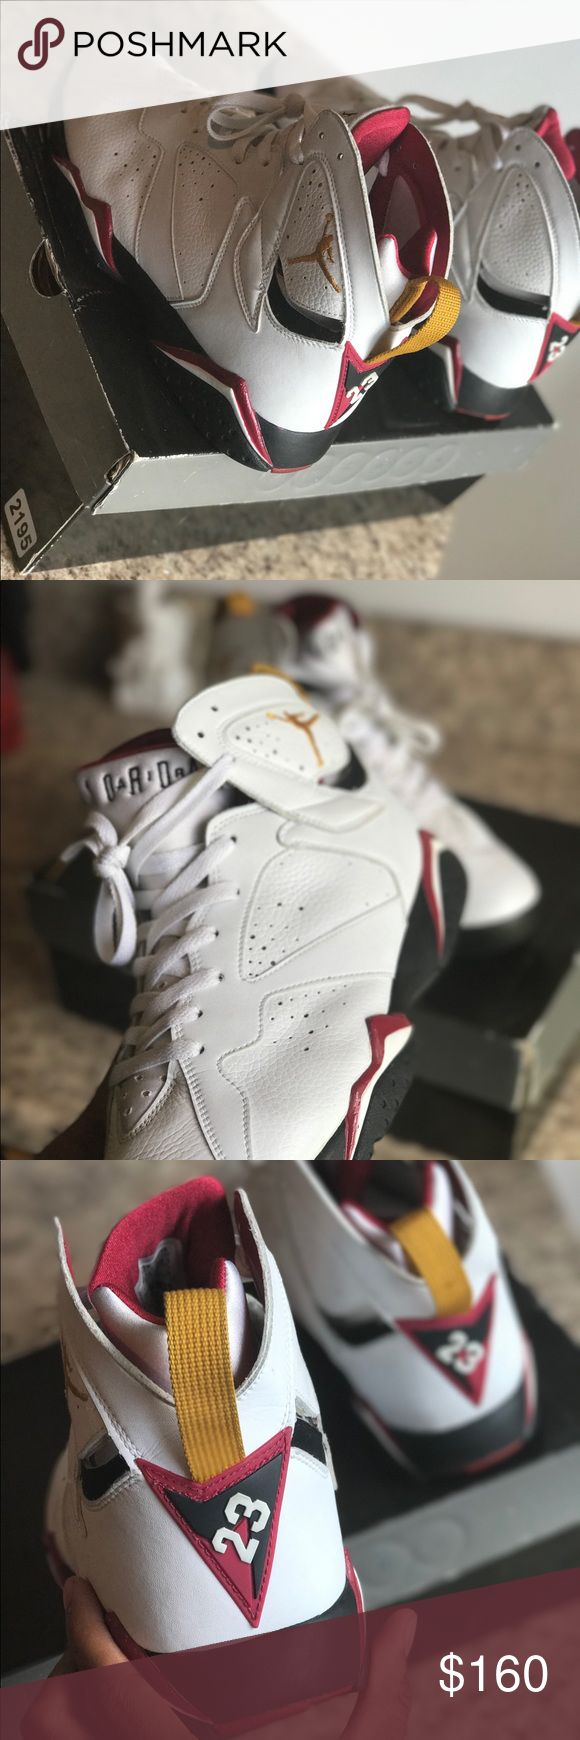 Cardinal 7s 🐤🔥 Cardinal 7s size 10. Slight creasing still in great condition I would say 9.6/10. Comes with original box and all 📦🙏🏾 Jordan Shoes Sneakers